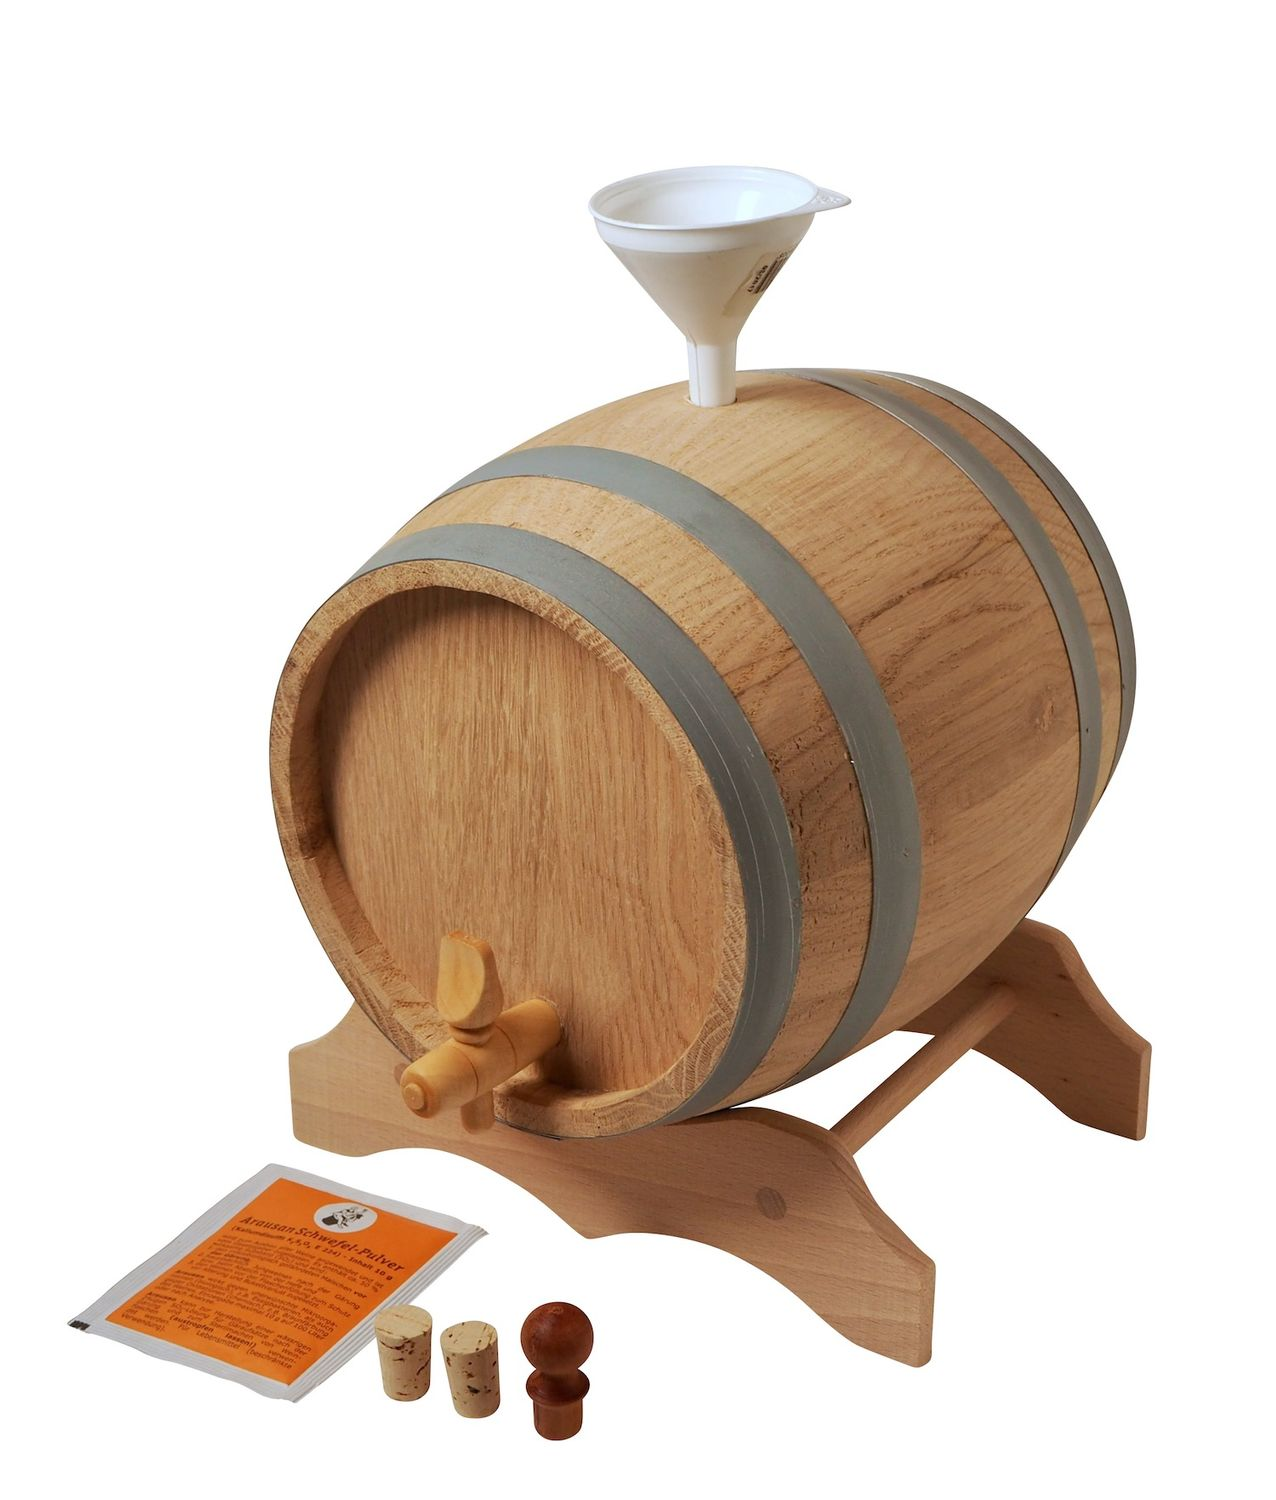 3 L Barrel with wooden stand in a set, European oak wood